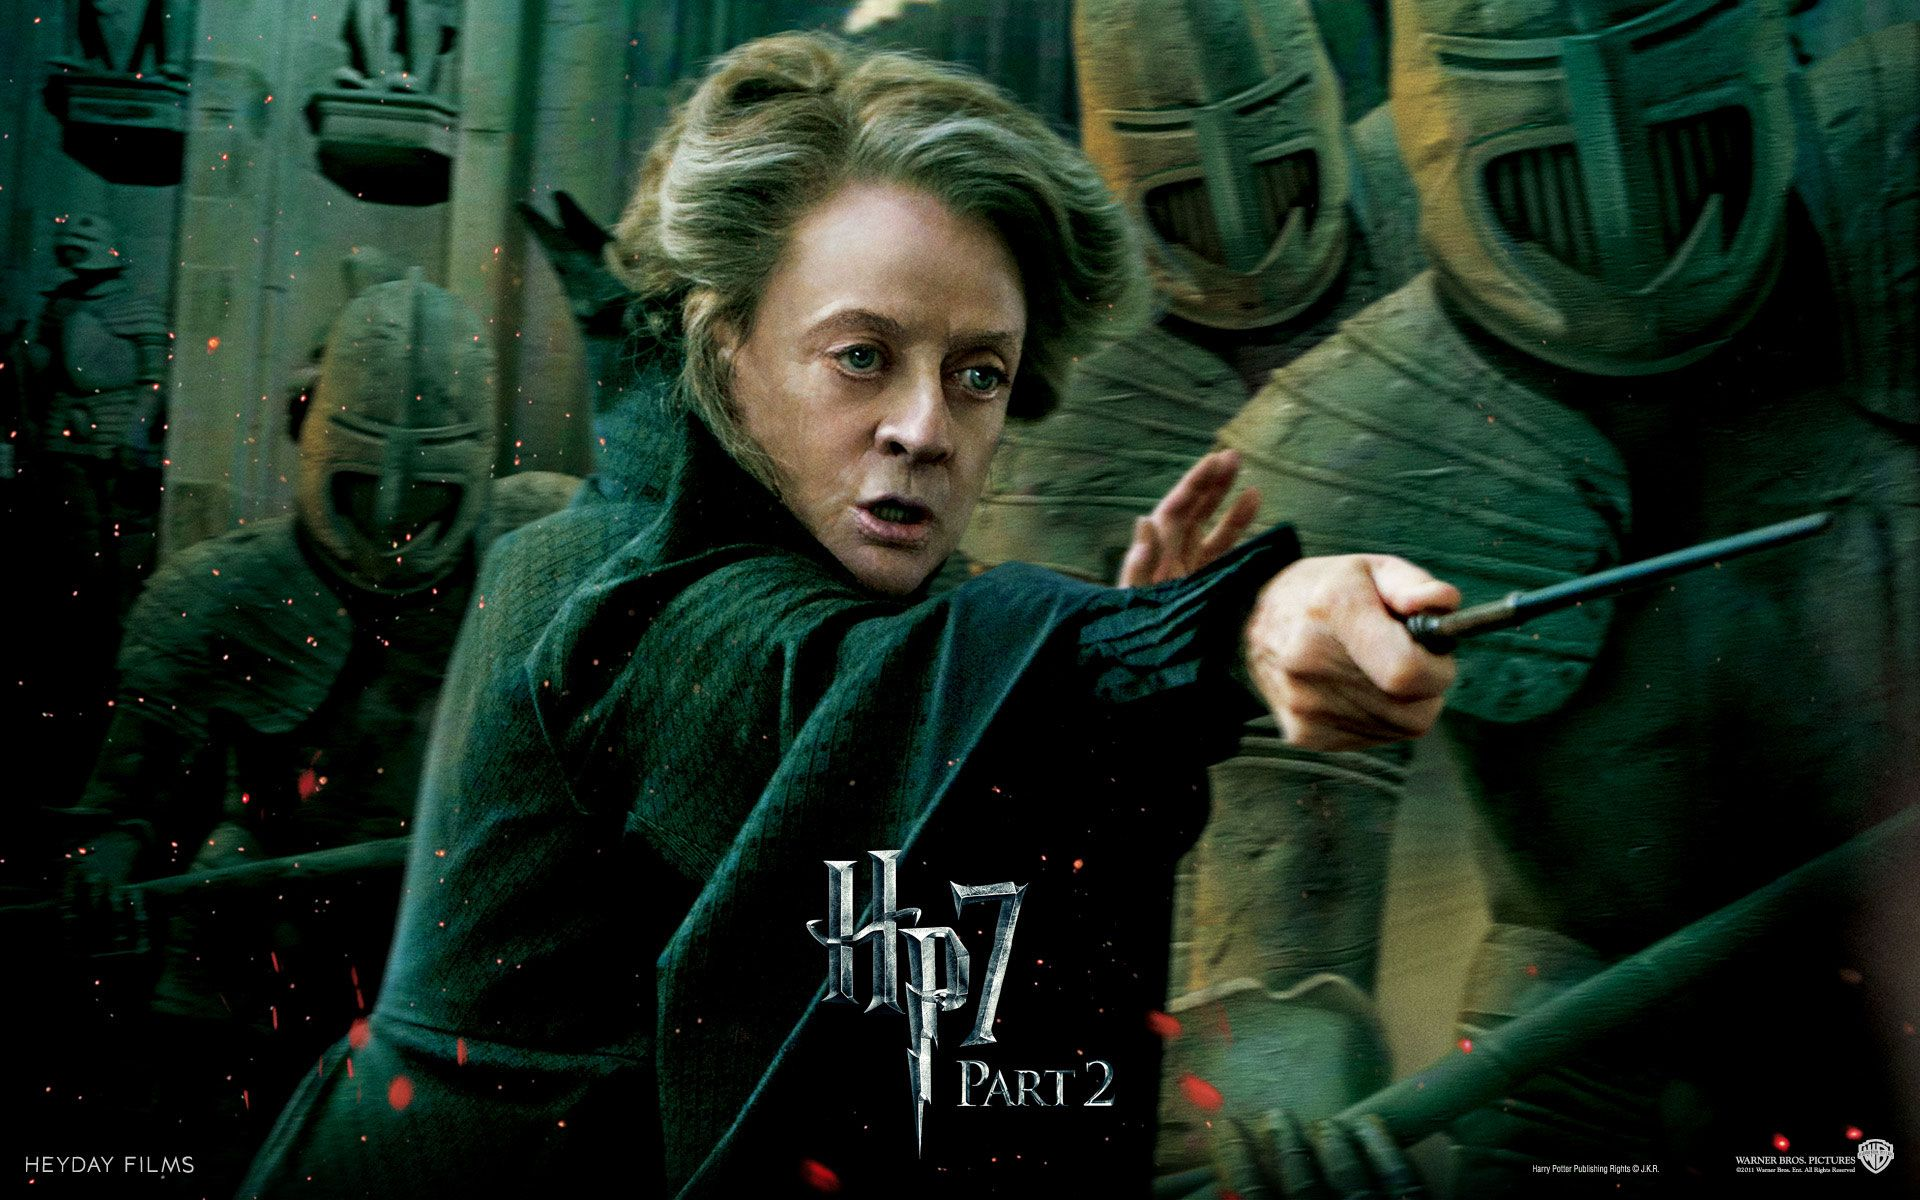 Watch Streaming Hd Harry Potter And The Deathly Hallows Part 2 Starring Daniel Radcliffe Emma Harry Potter Poster Harry Potter Movies Deathly Hallows Part 2